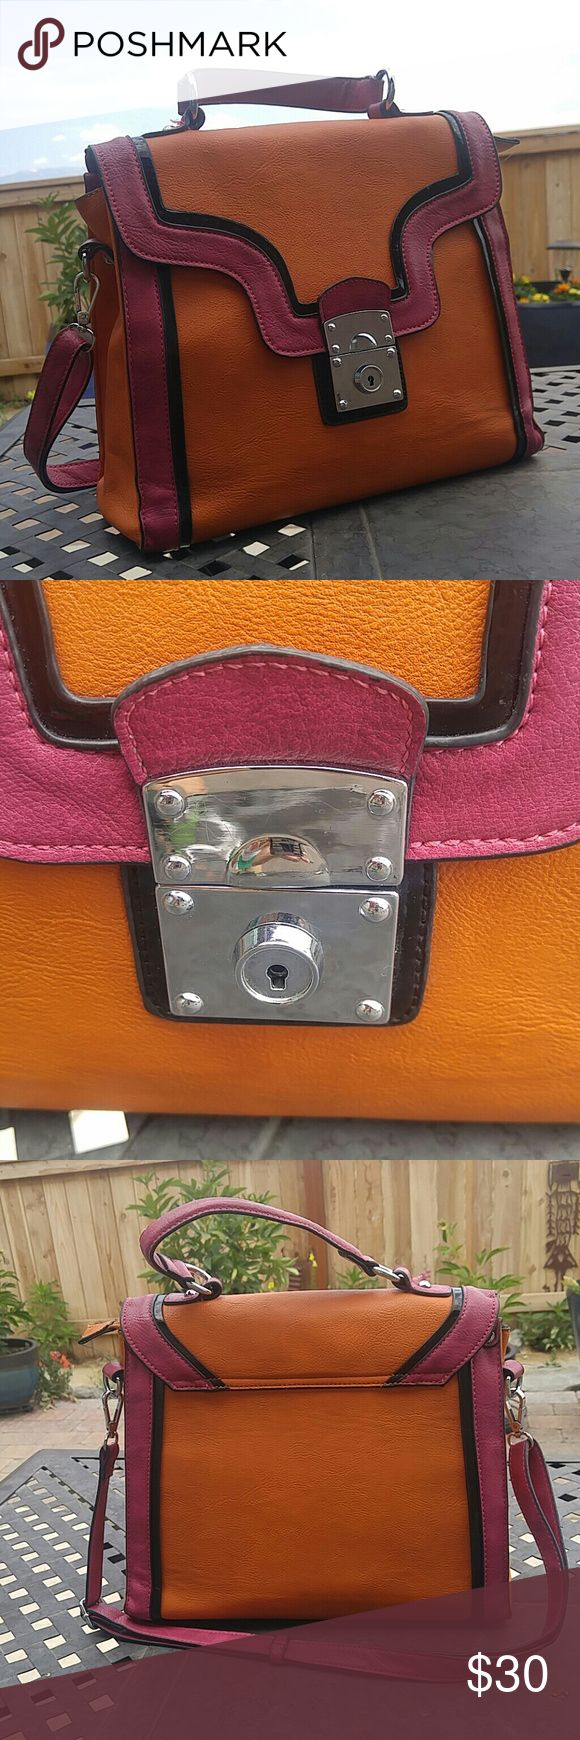 melie bianco purse handbag shoulder bag Stylish designer cruelty free vegan leather purse. Mauve-pink and burnt orange color with black trim and silver fasteners. A lock style buckle. Removable and adjustable shoulder strap. Polka dot liner.  High quality material. Used but in excellent shape. Melie Bianco Bags Shoulder Bags